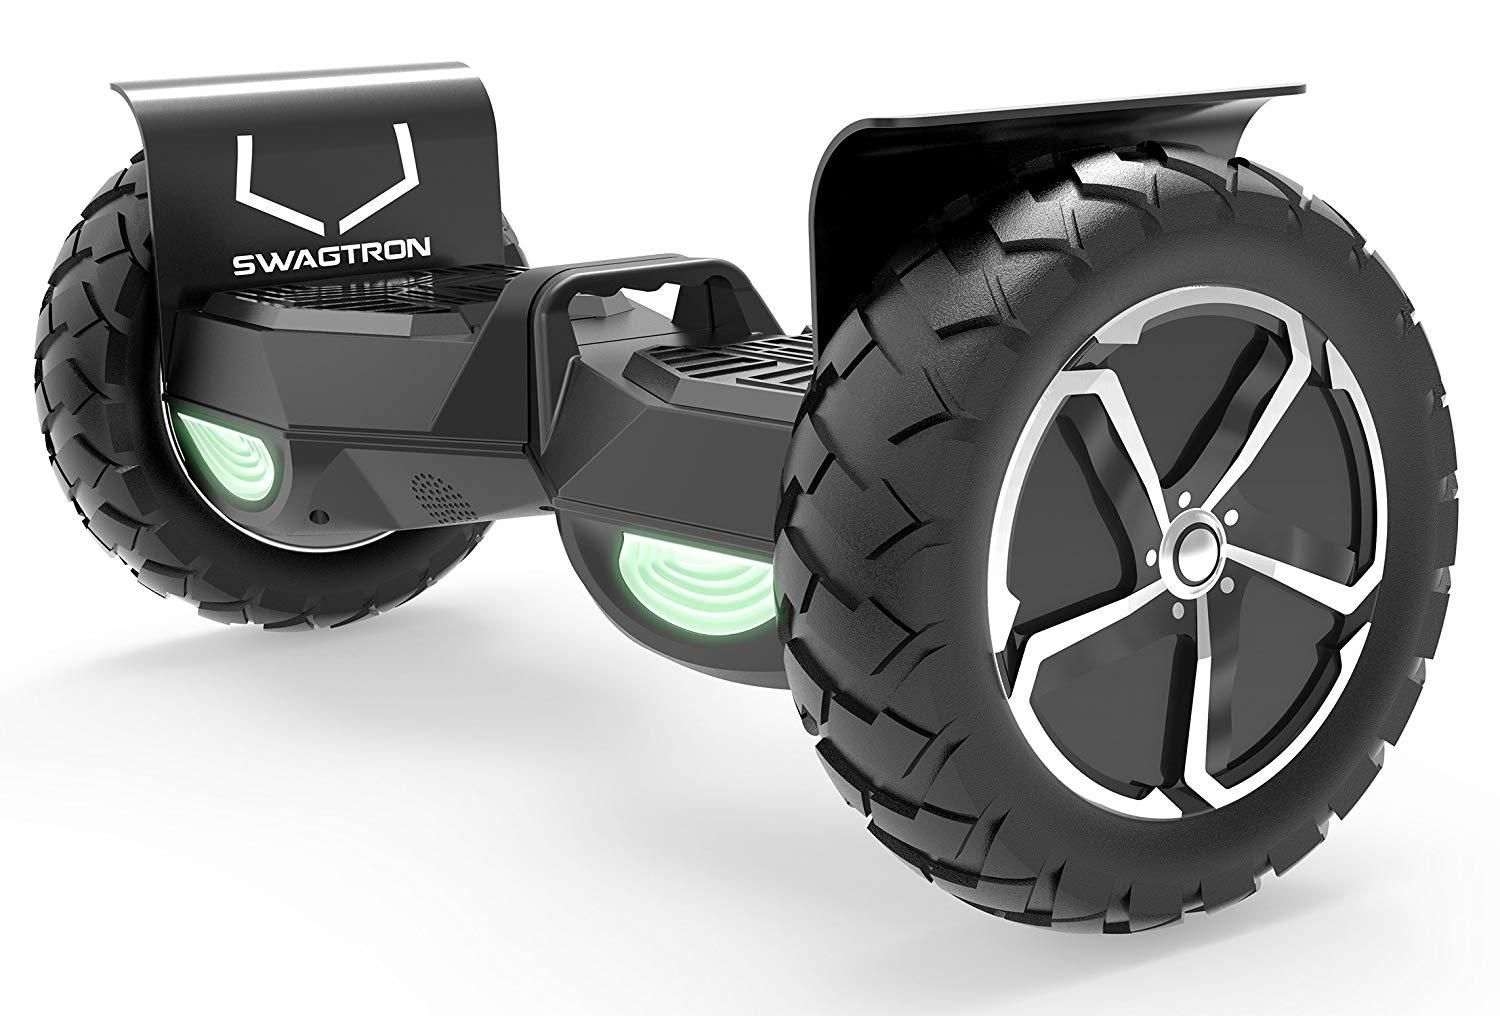 "SWAGTRON T6 Off-Road Hoverboard - First in the World to Handle Over 380 LBS, Up to 12 MPH, UL2272 Certified, 10"" Wheel (Black)"